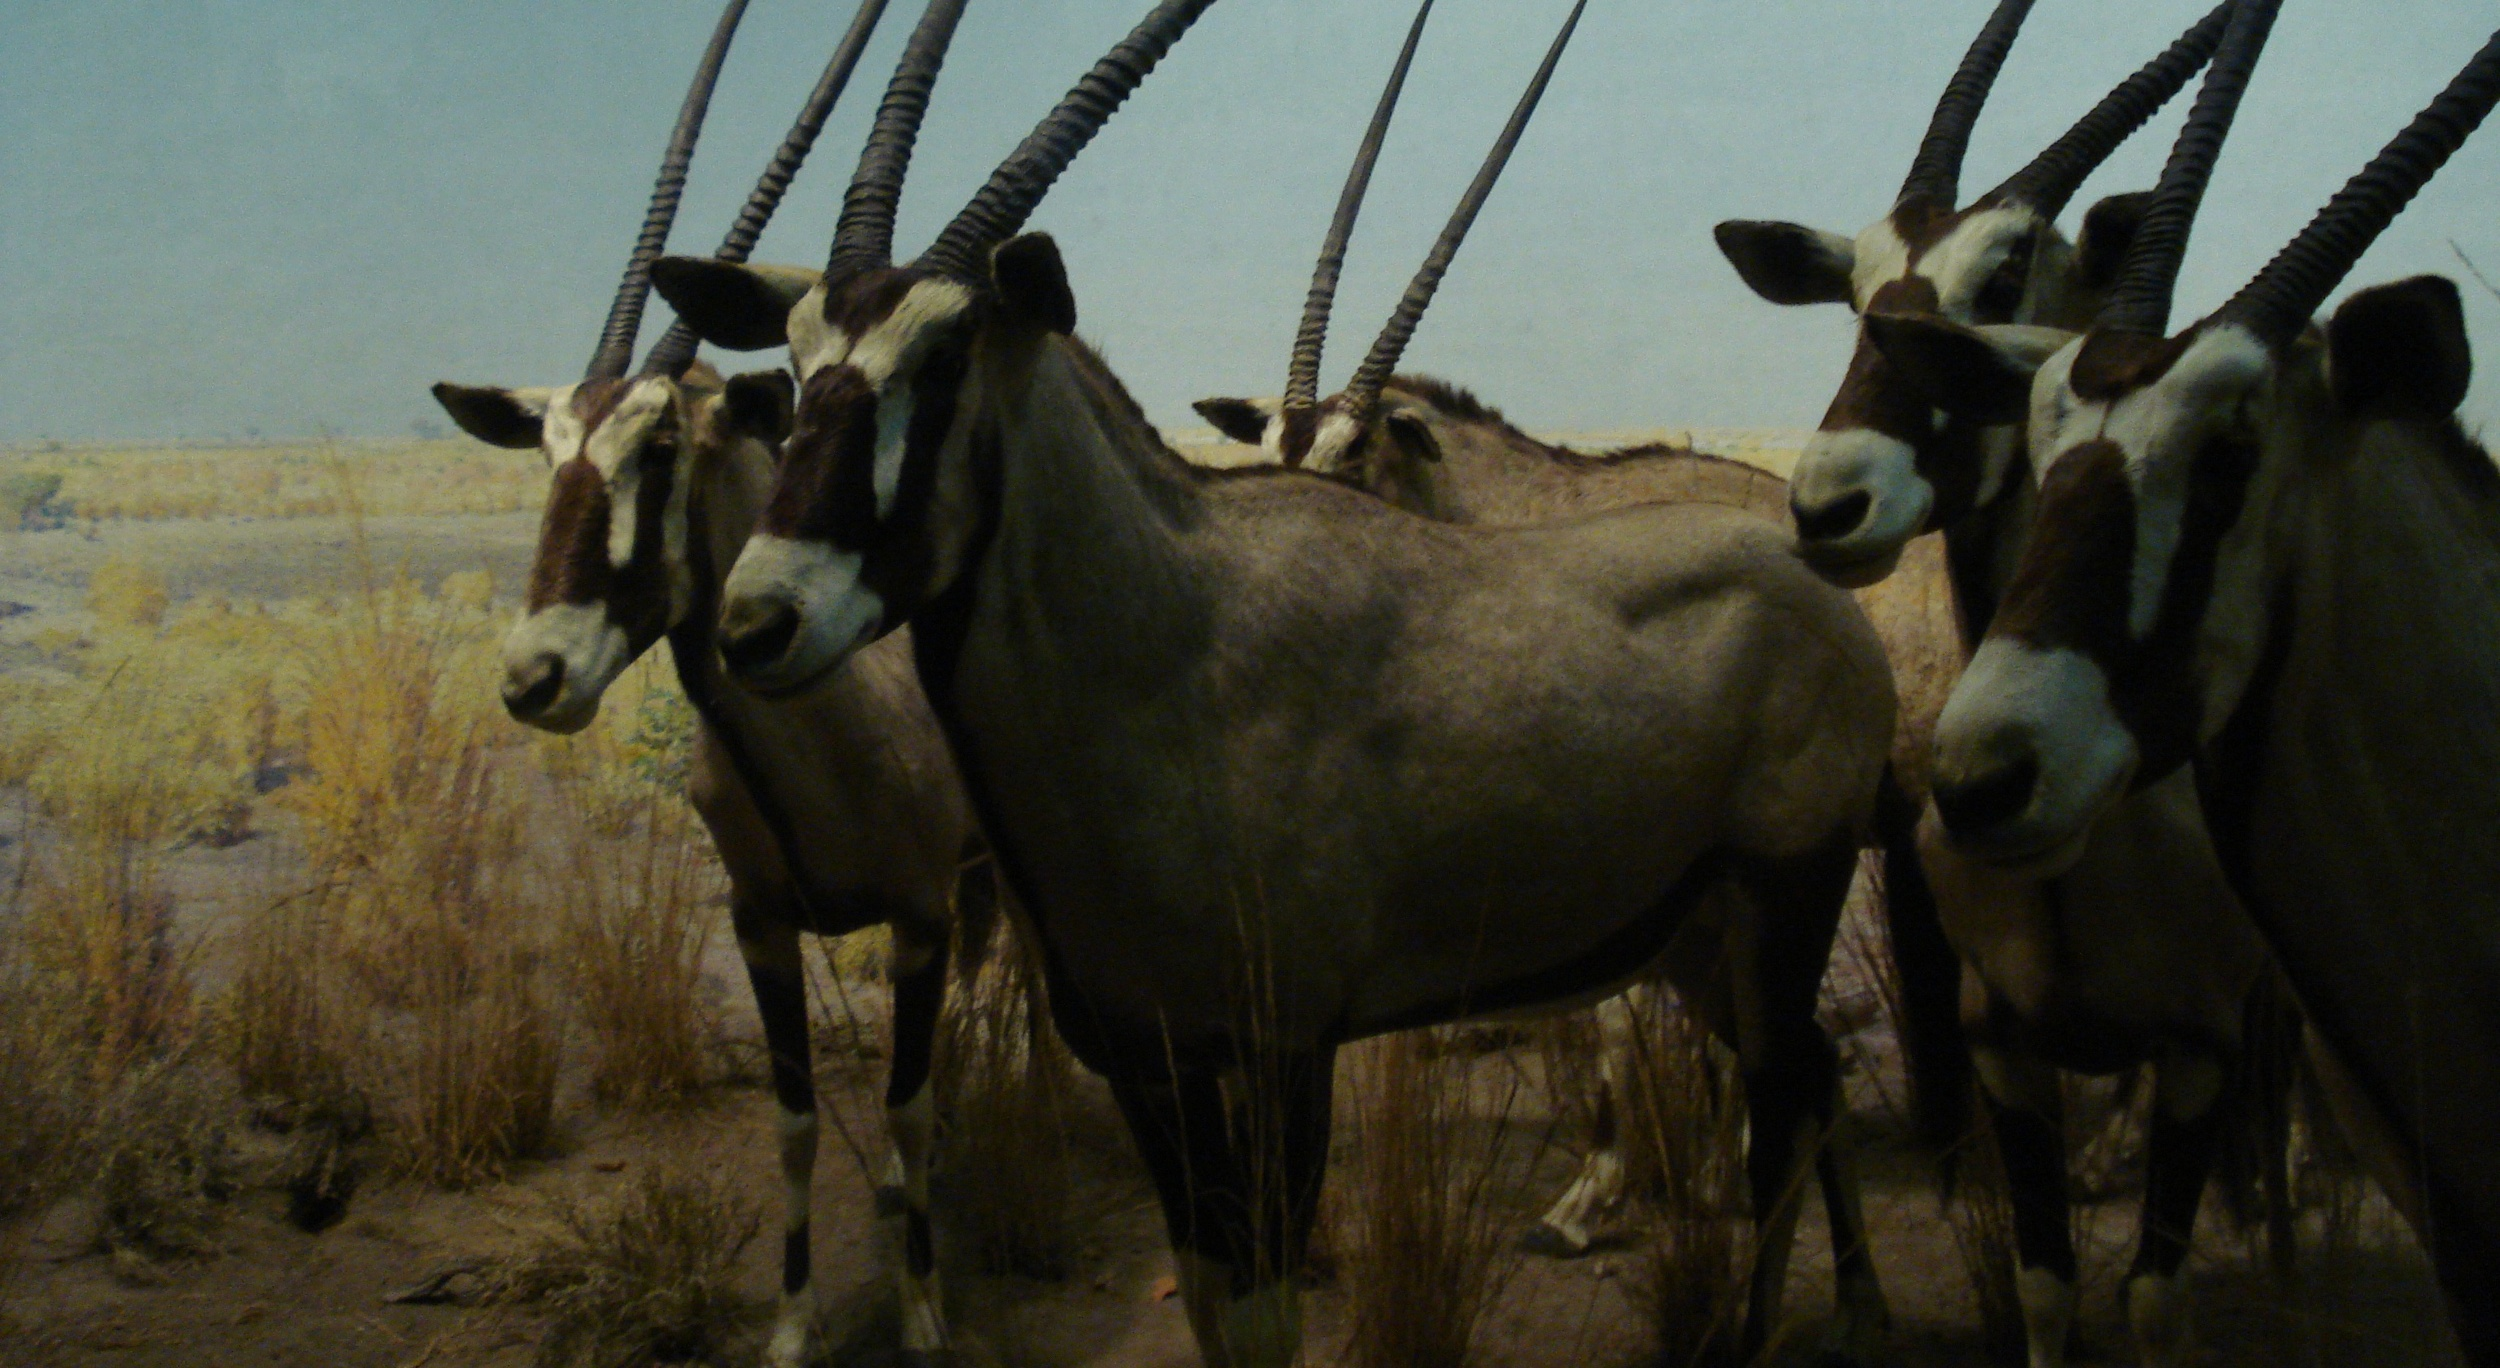 AMNH diorama: Oryx in the plain of Africa.